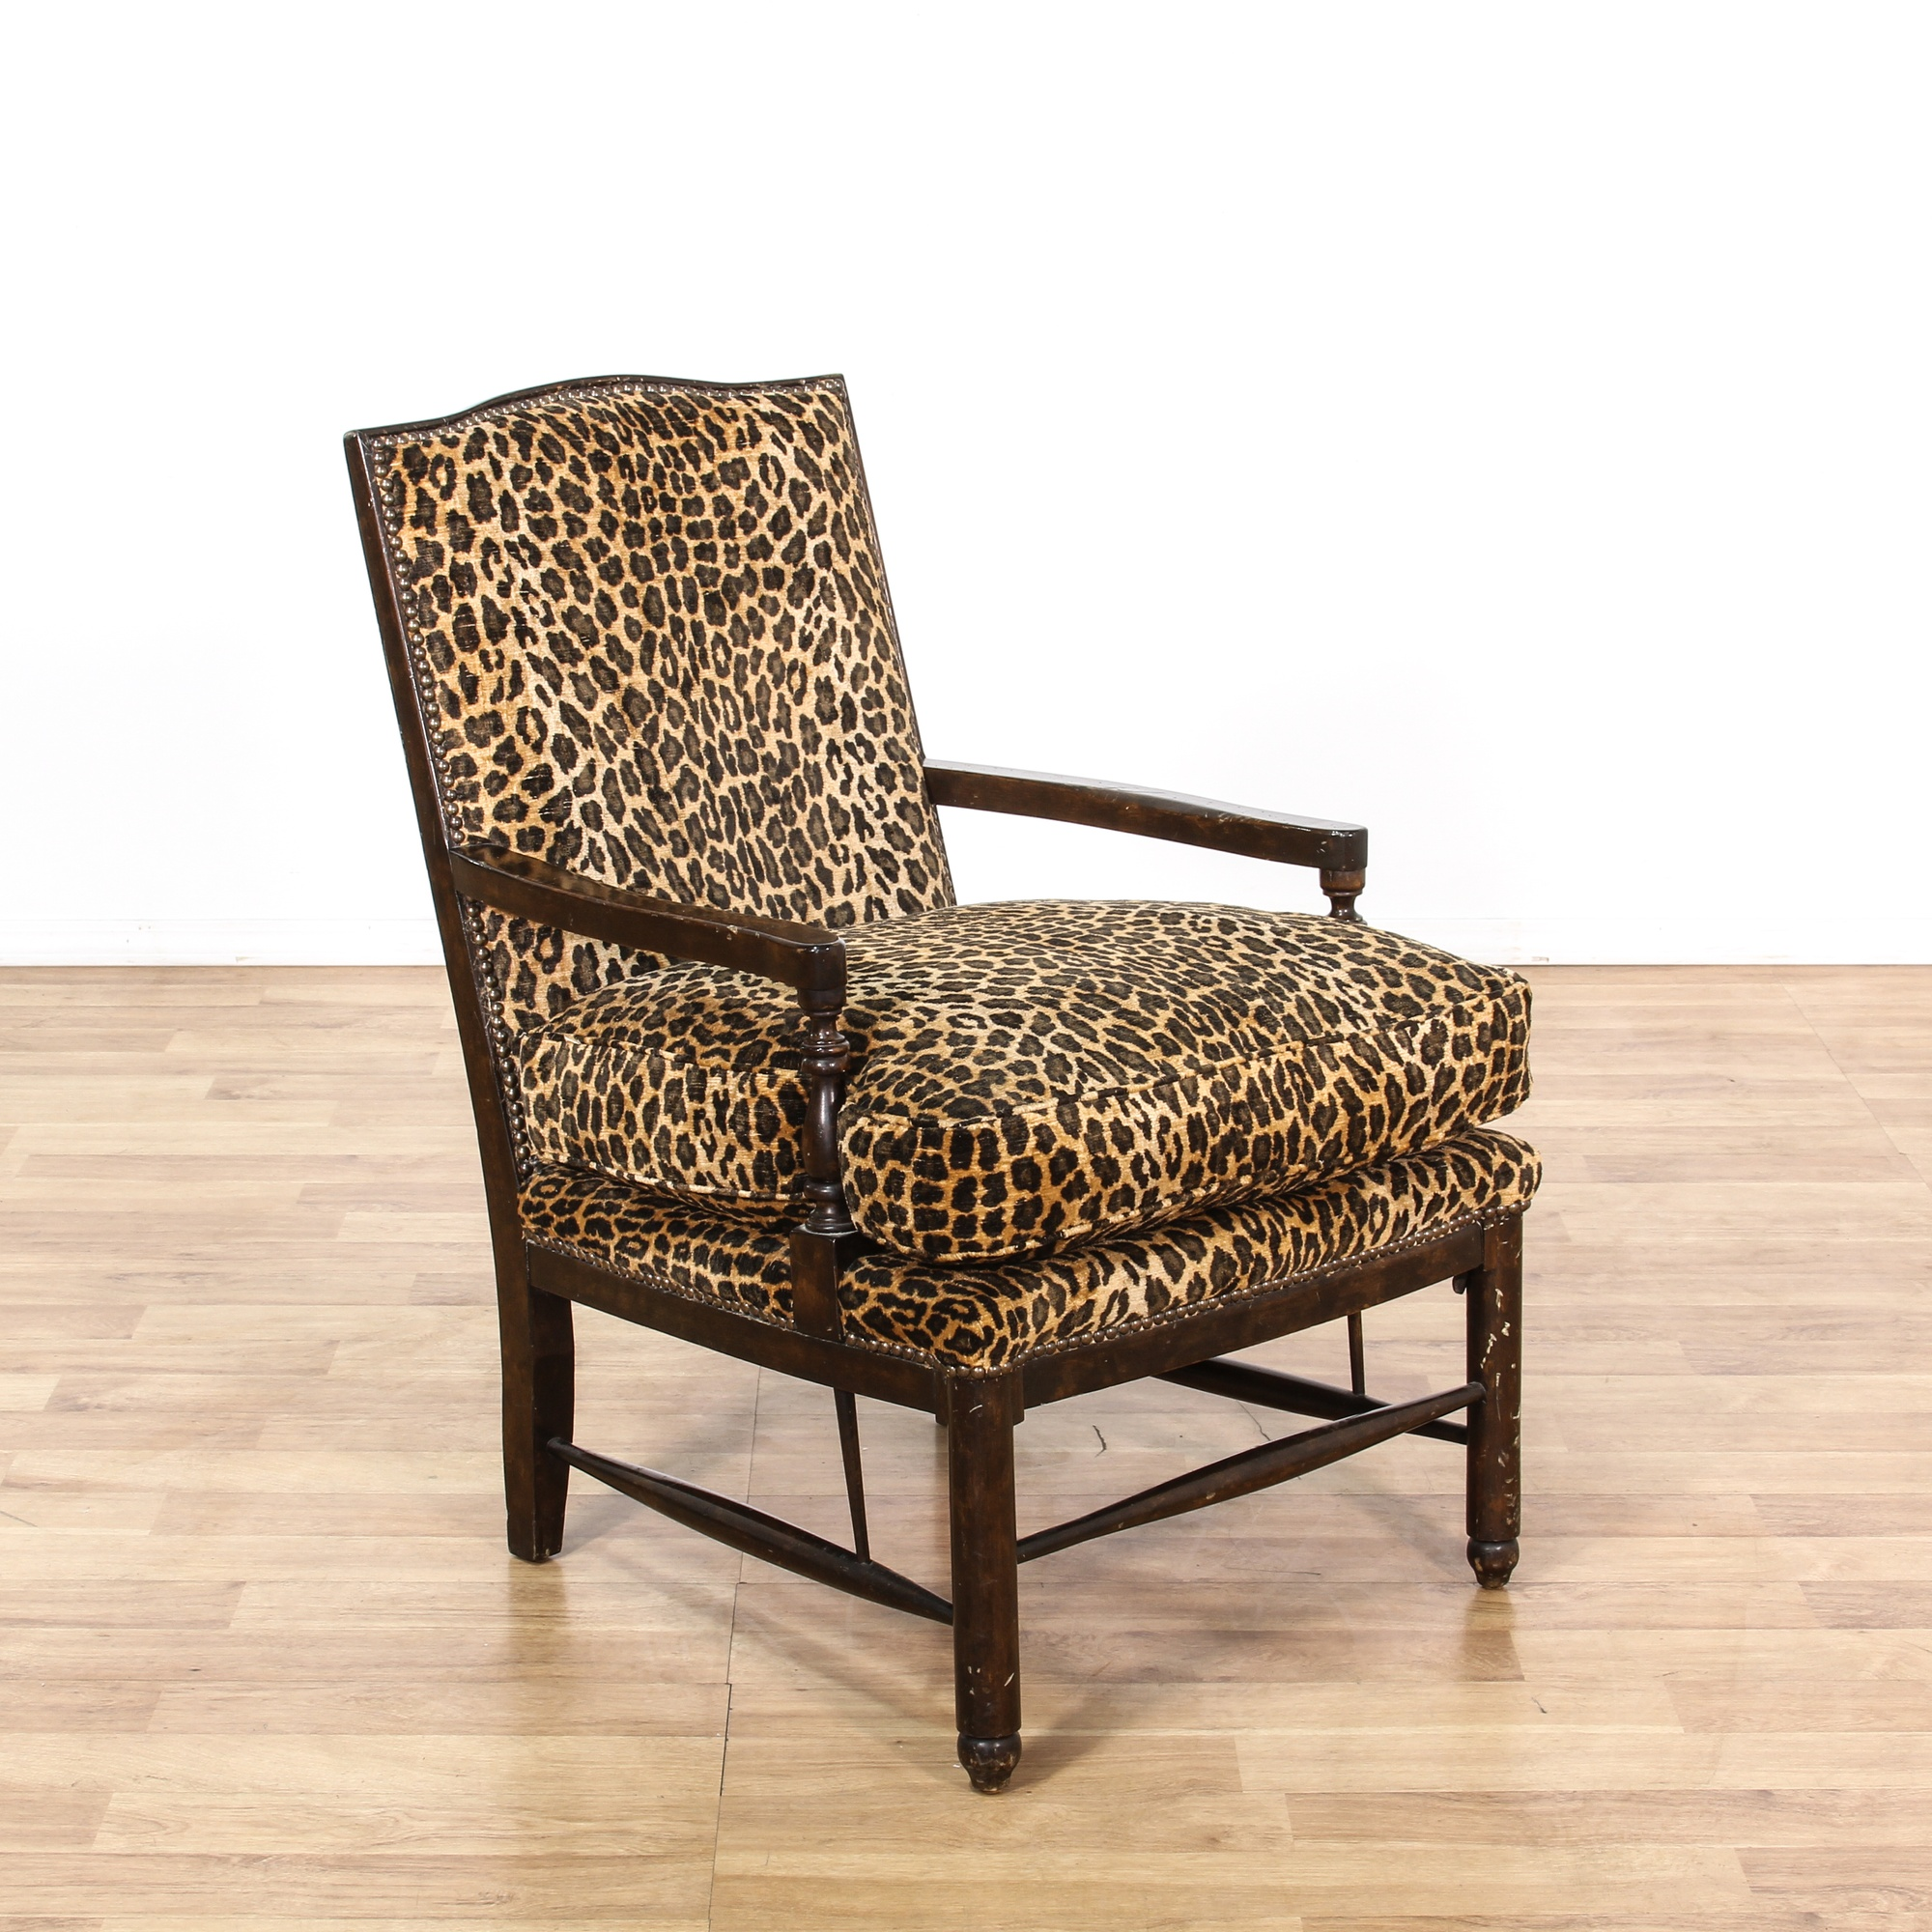 Missoni Style Print Accent Chair: Leopard Print Carved Wood Accent Chair